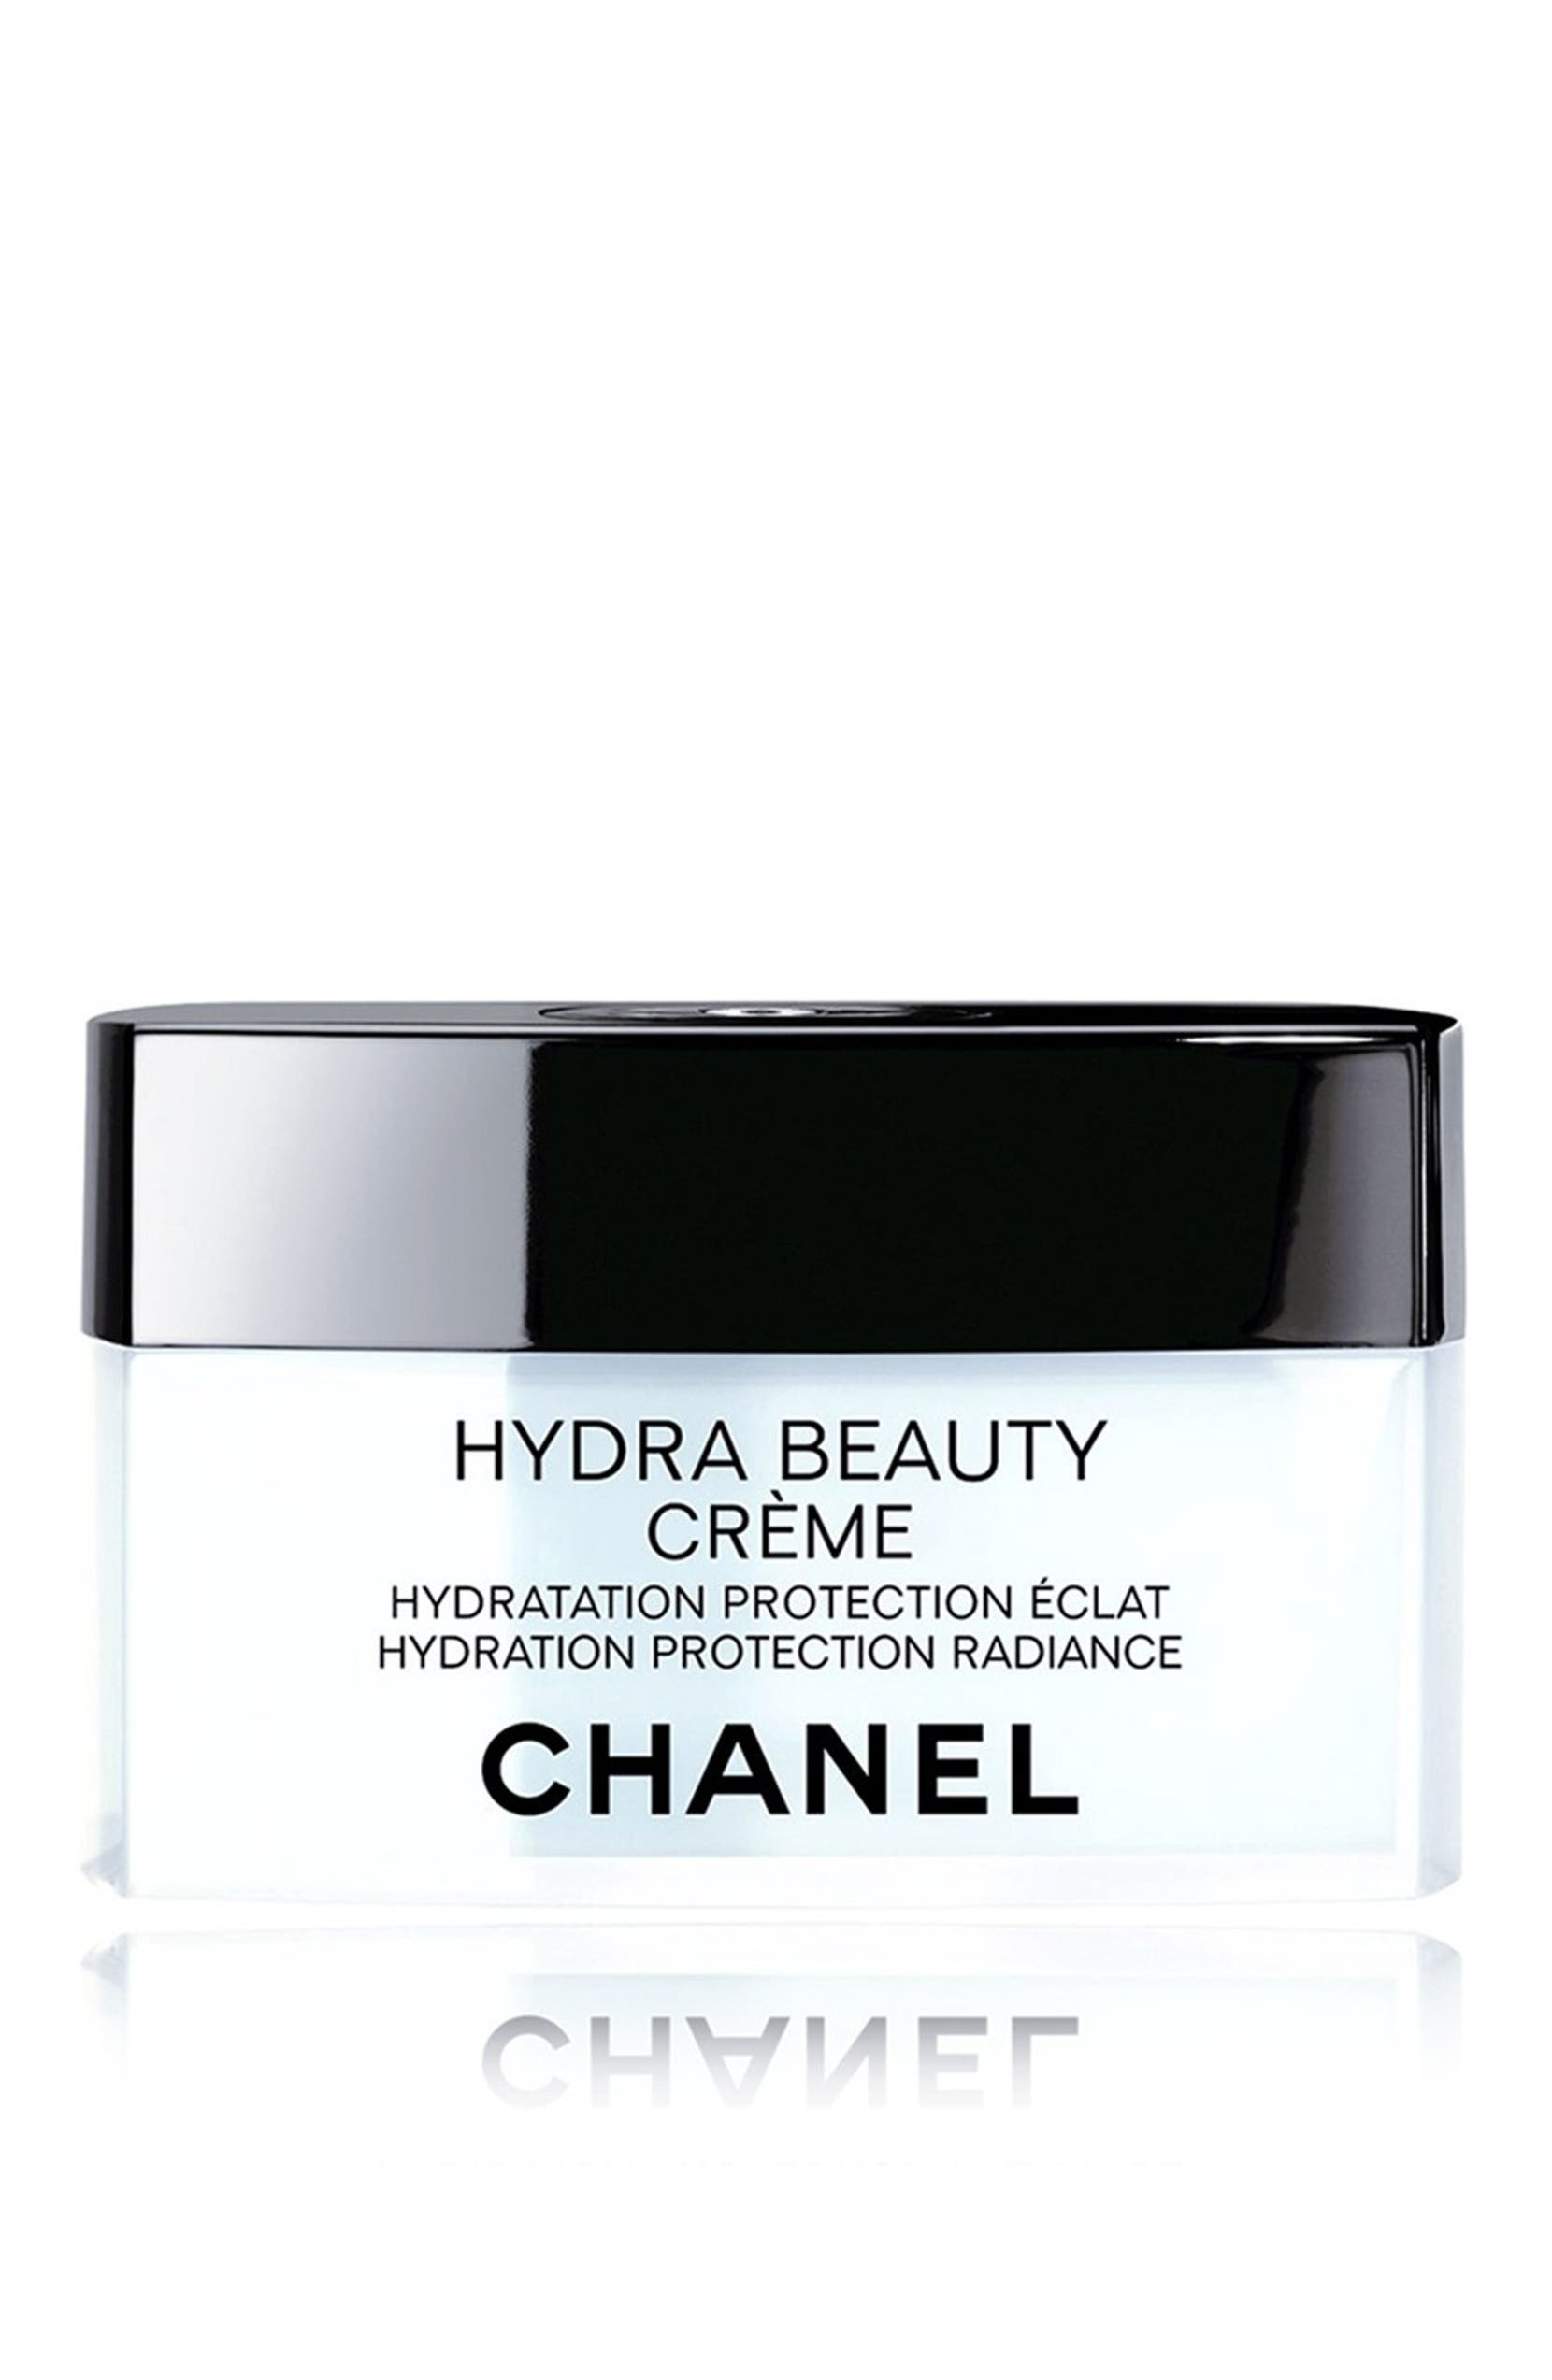 fbcd28bfe93e CHANEL HYDRA BEAUTY CRÈME Hydration Protection Radiance | Nordstrom